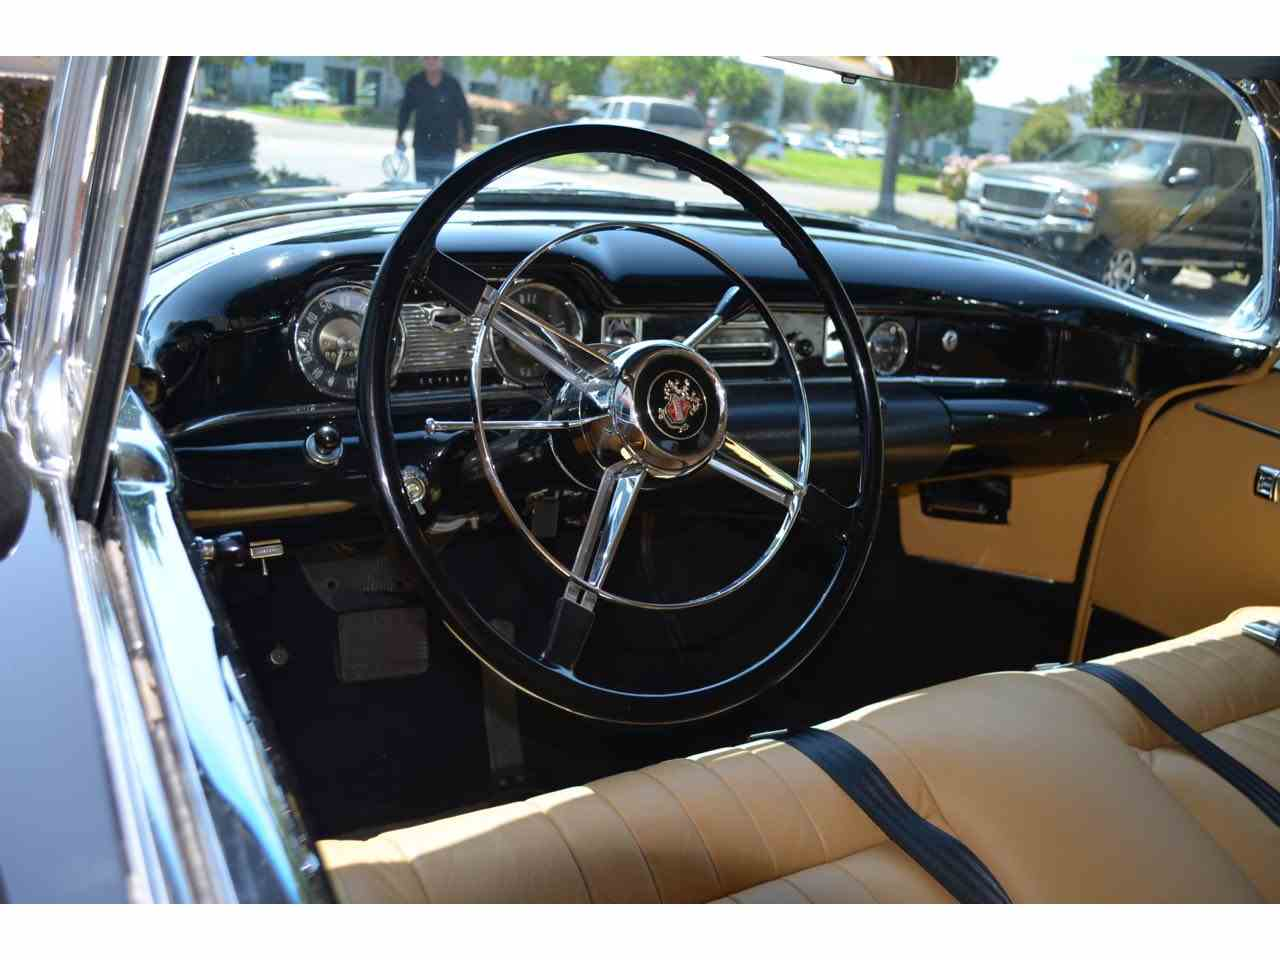 Large Picture of Classic '54 Buick Skylark located in California - $129,000.00 Offered by Spoke Motors - LT5D